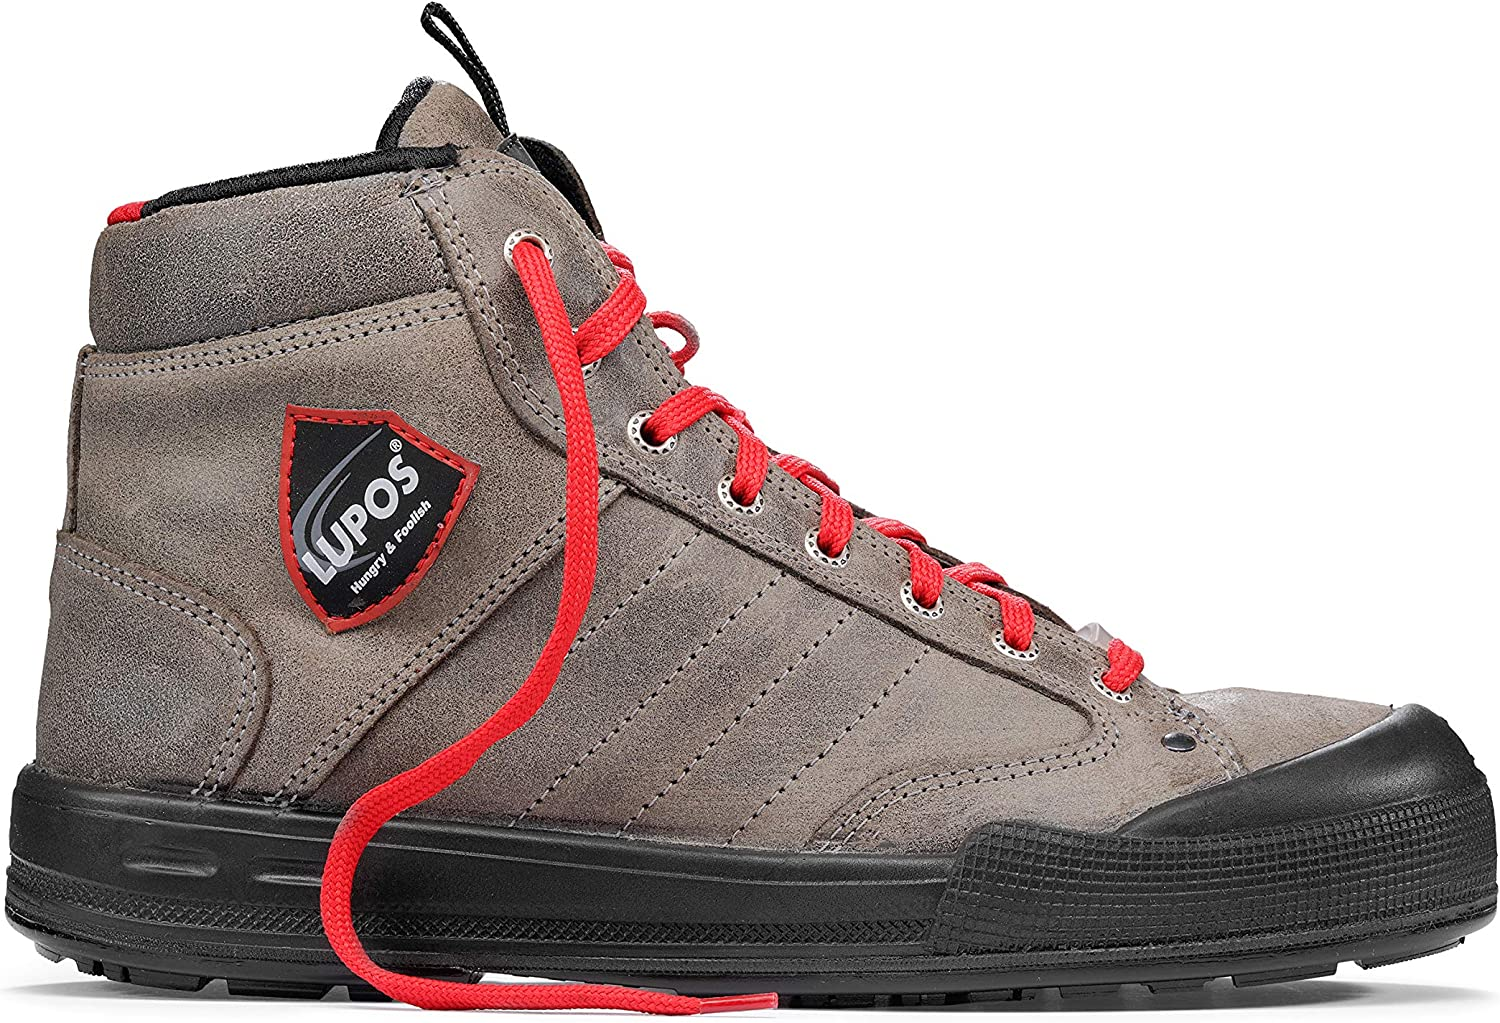 Lupos Rodney S3 Src Esd LU10064 Safety shoes, ETPU, 43, Turtle Black Red